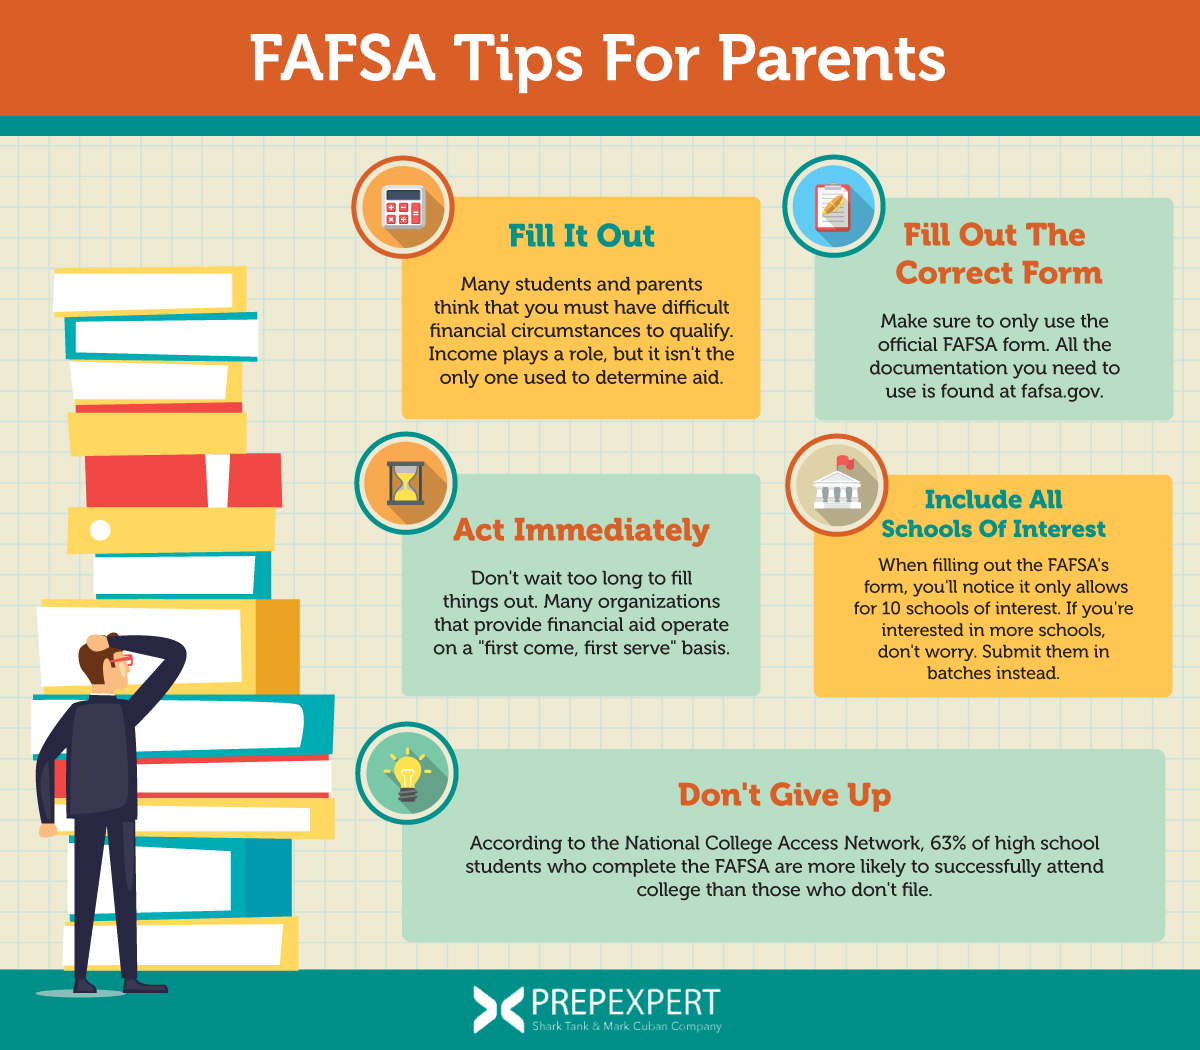 Fafsa Tips For Parents